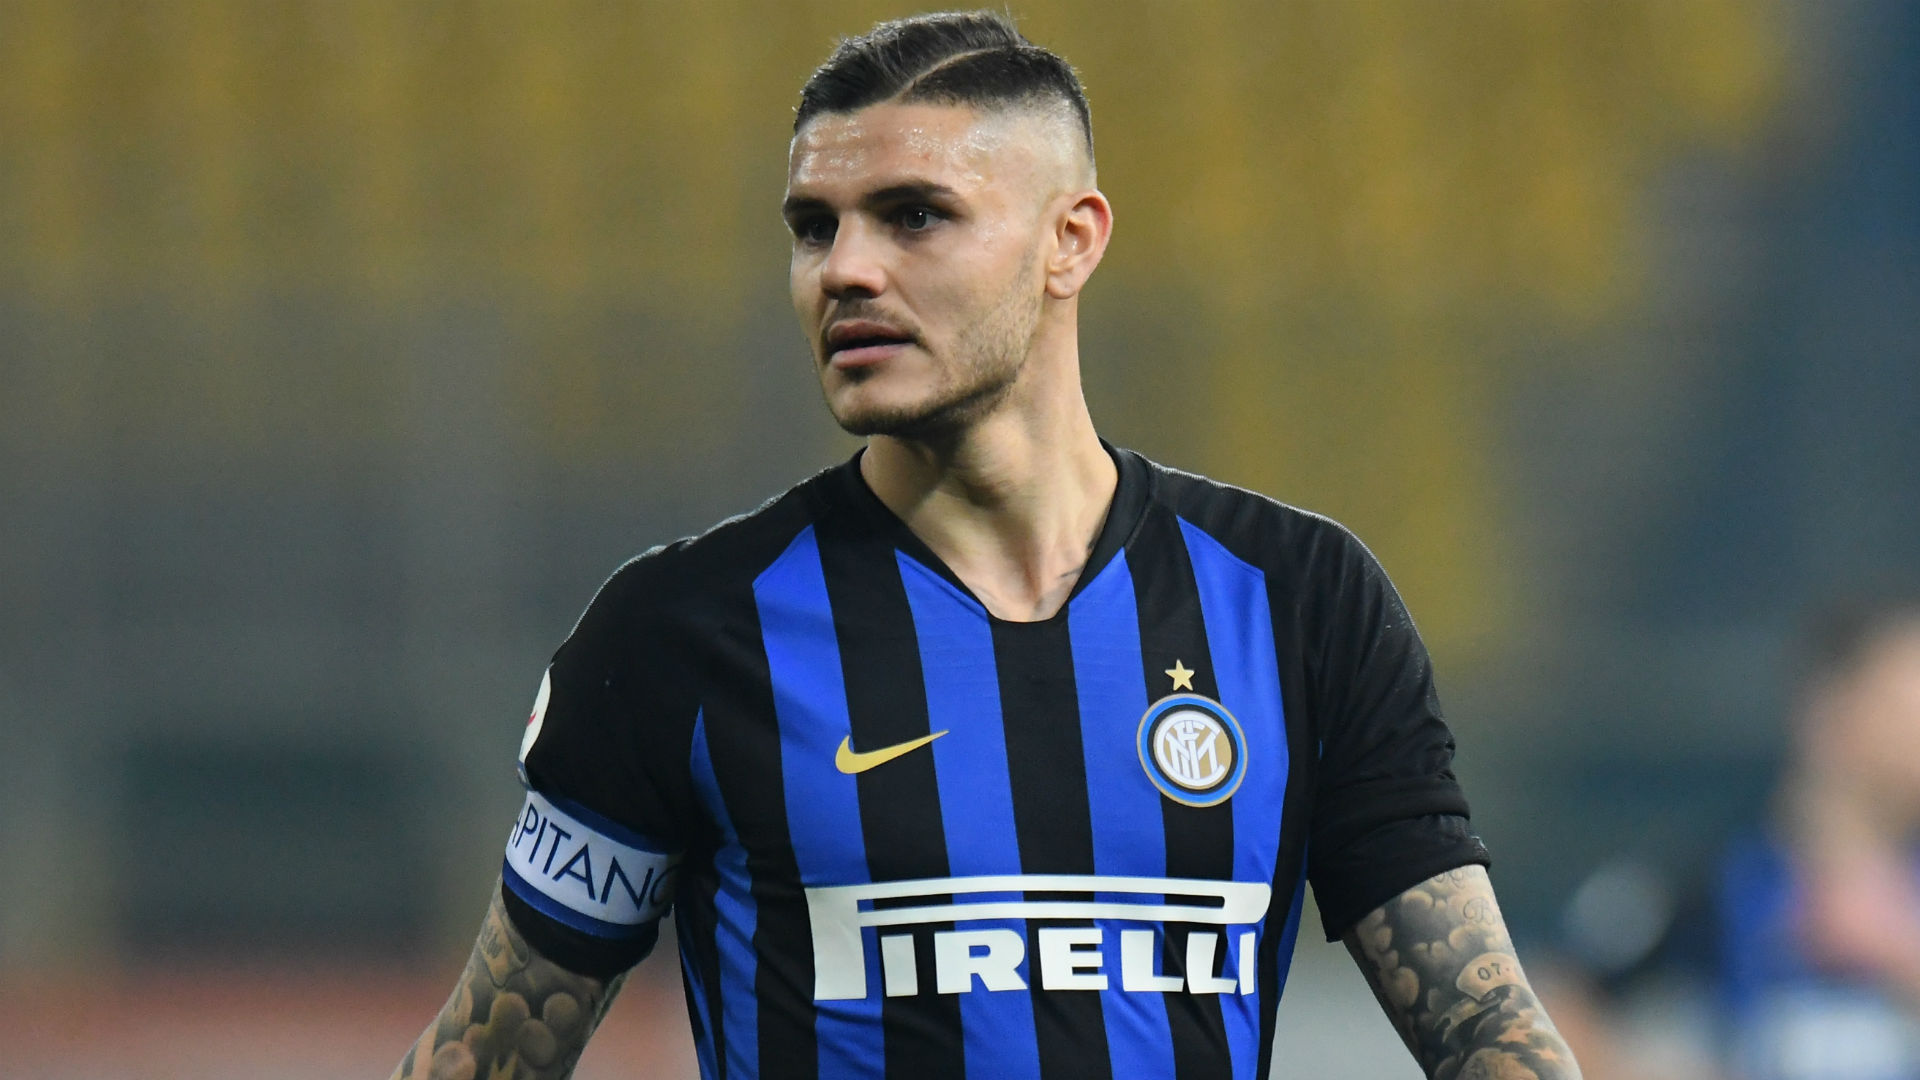 Icardi omitted from Inter Europa League squad